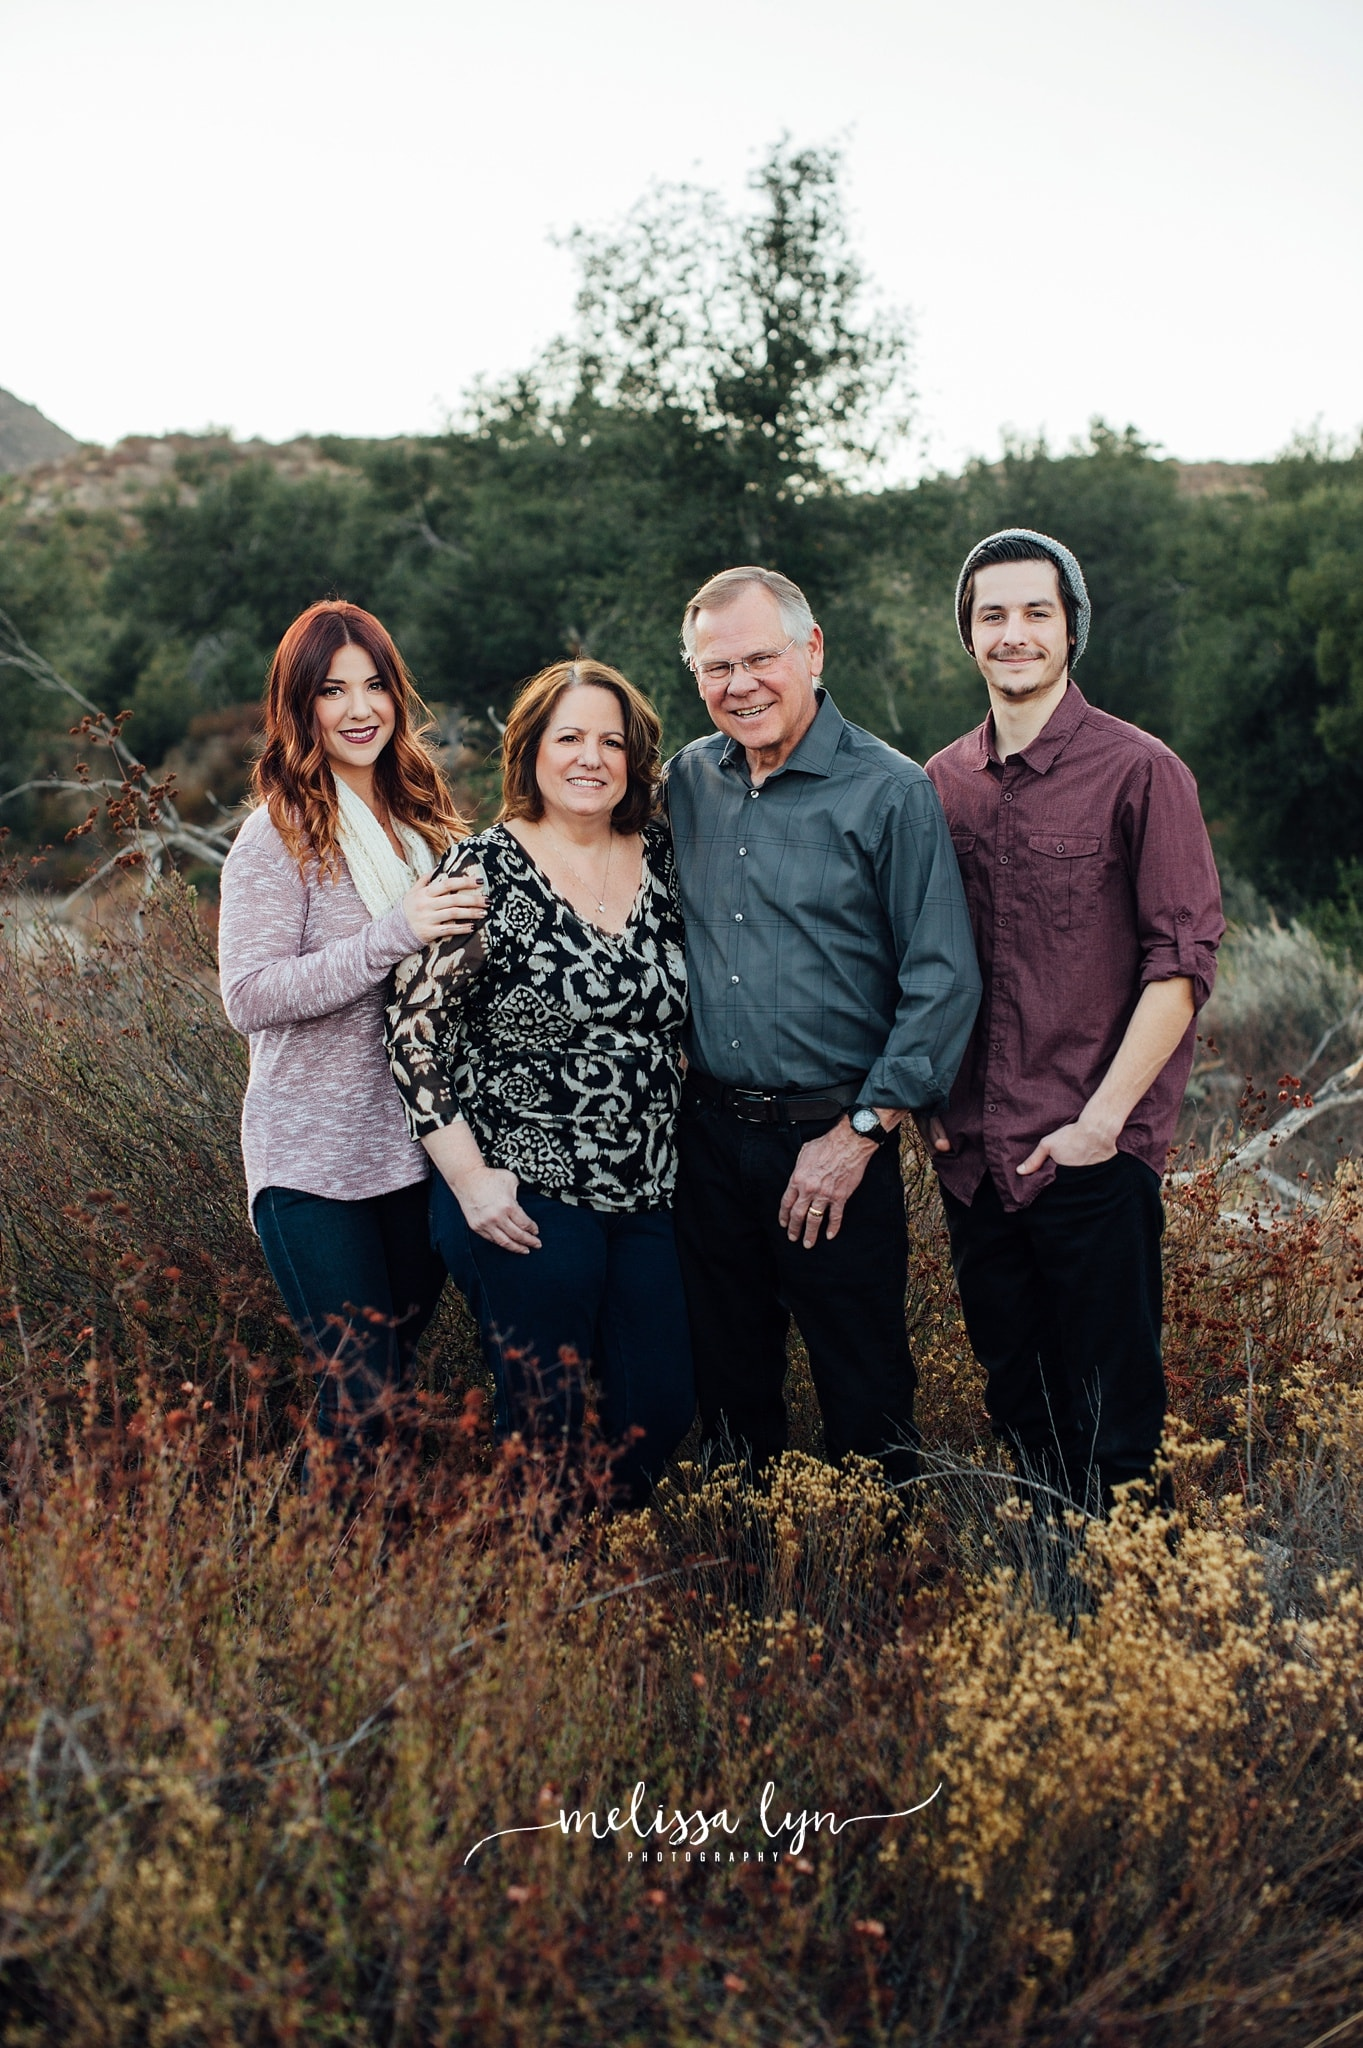 Melissa Lyn Photography - Temecula Family Photographer - Temecula Family Photography, outdoor family session